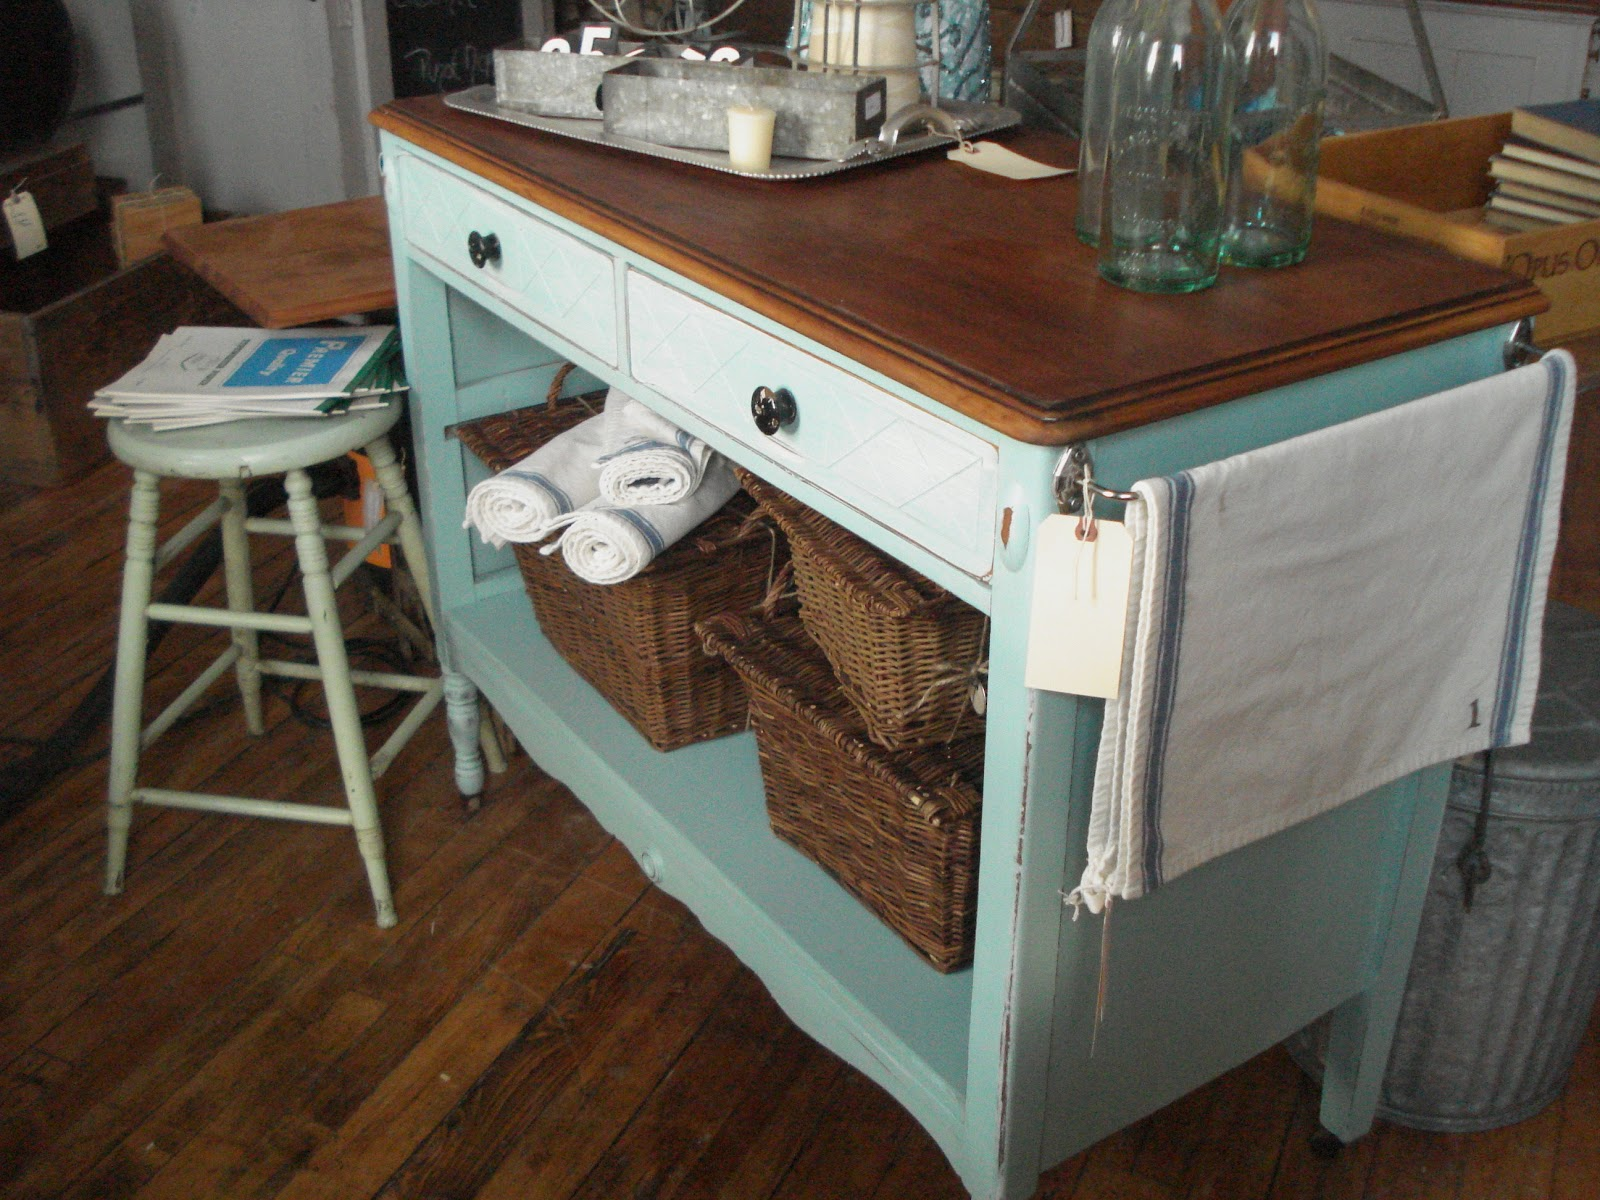 Turn A Dresser Into A Kitchen Island: Cricket Acres Studio: Repurposed Dresser Completed